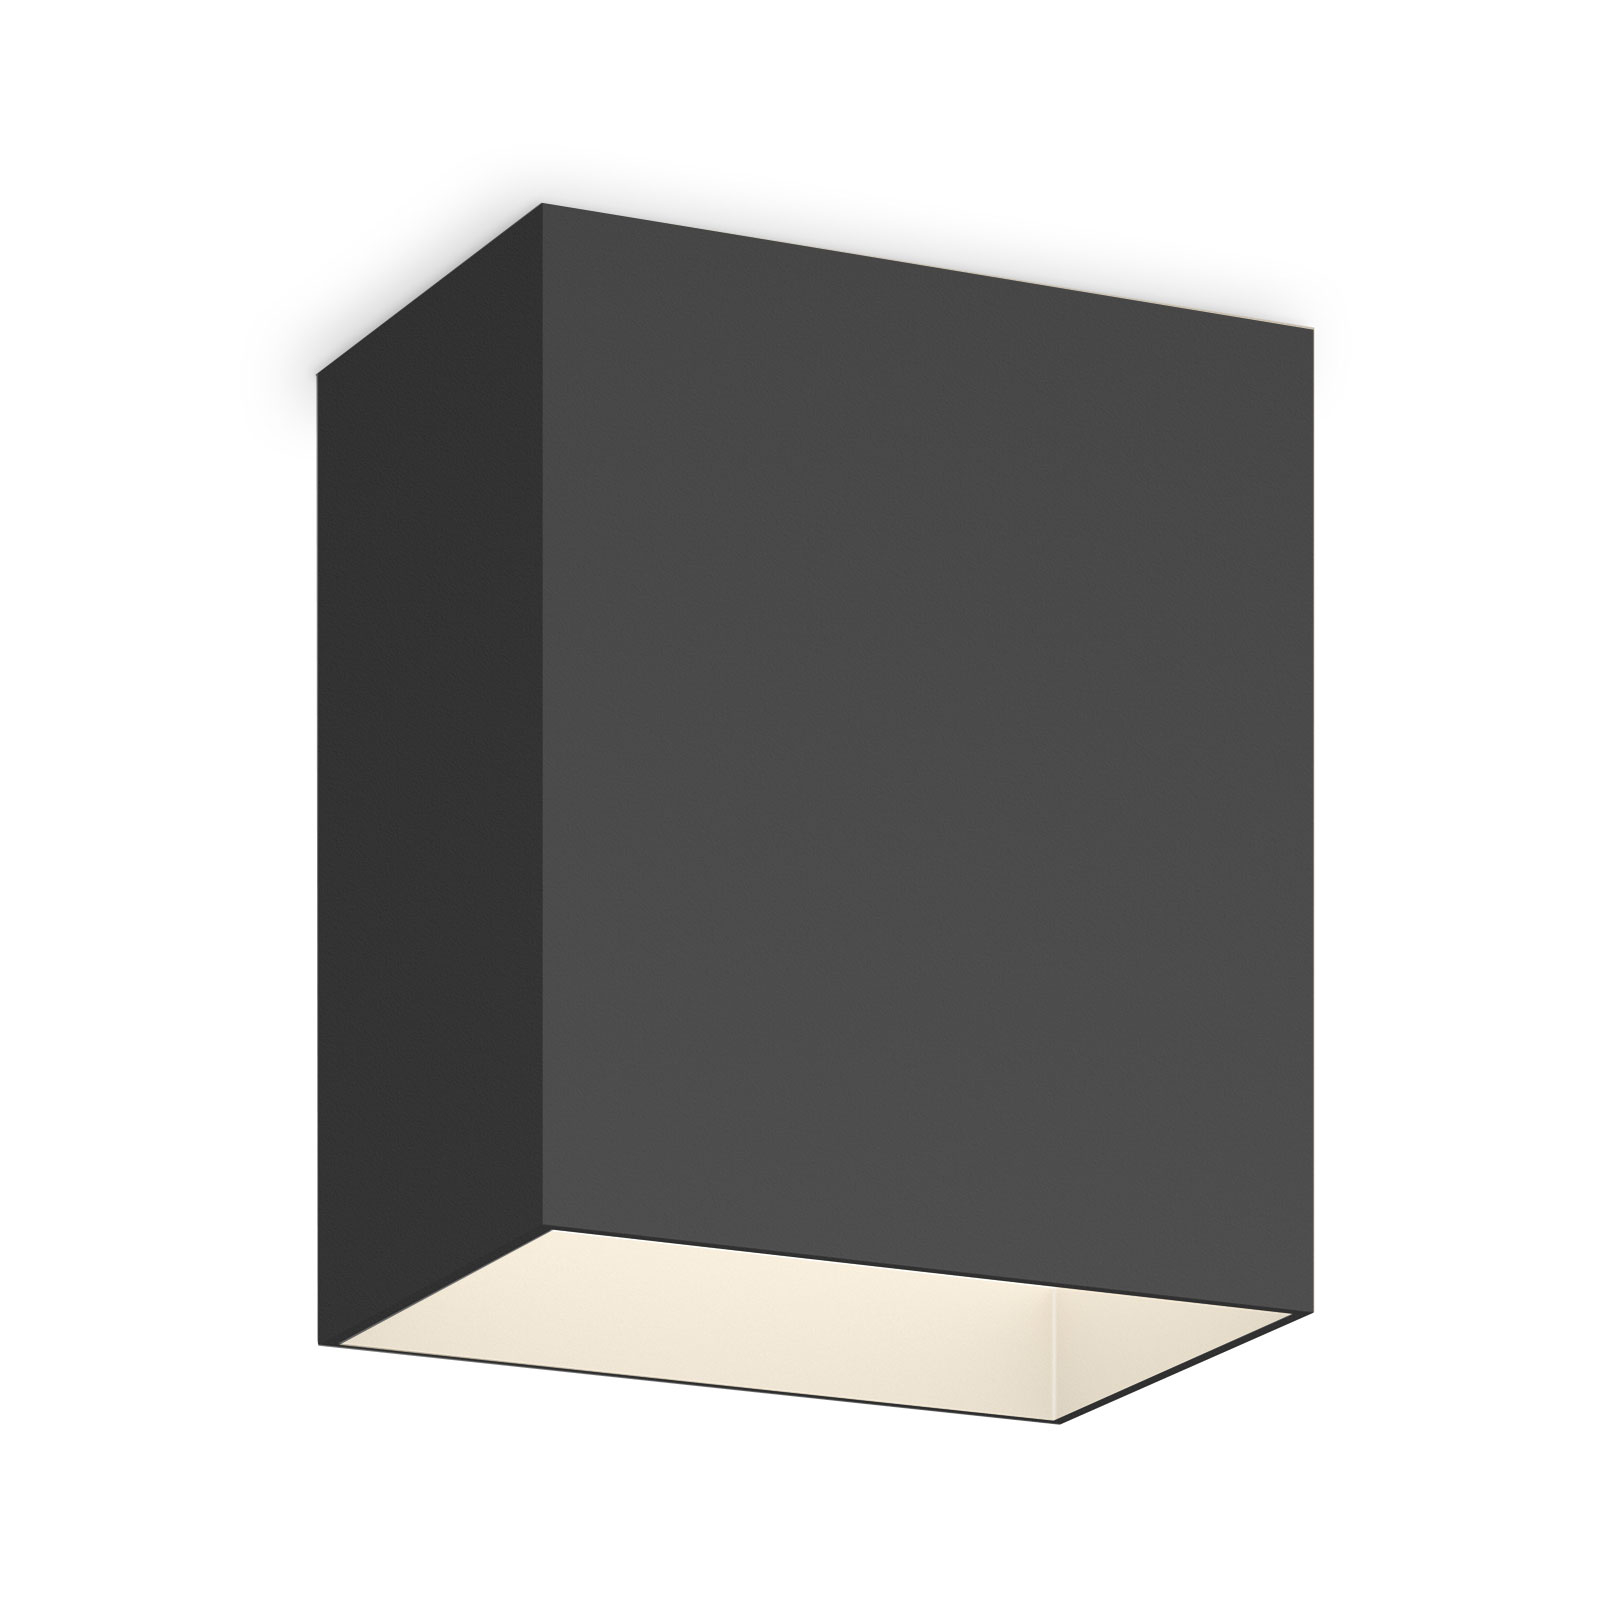 Vibia Structural 2630 plafondlamp 18cm donkergrijs